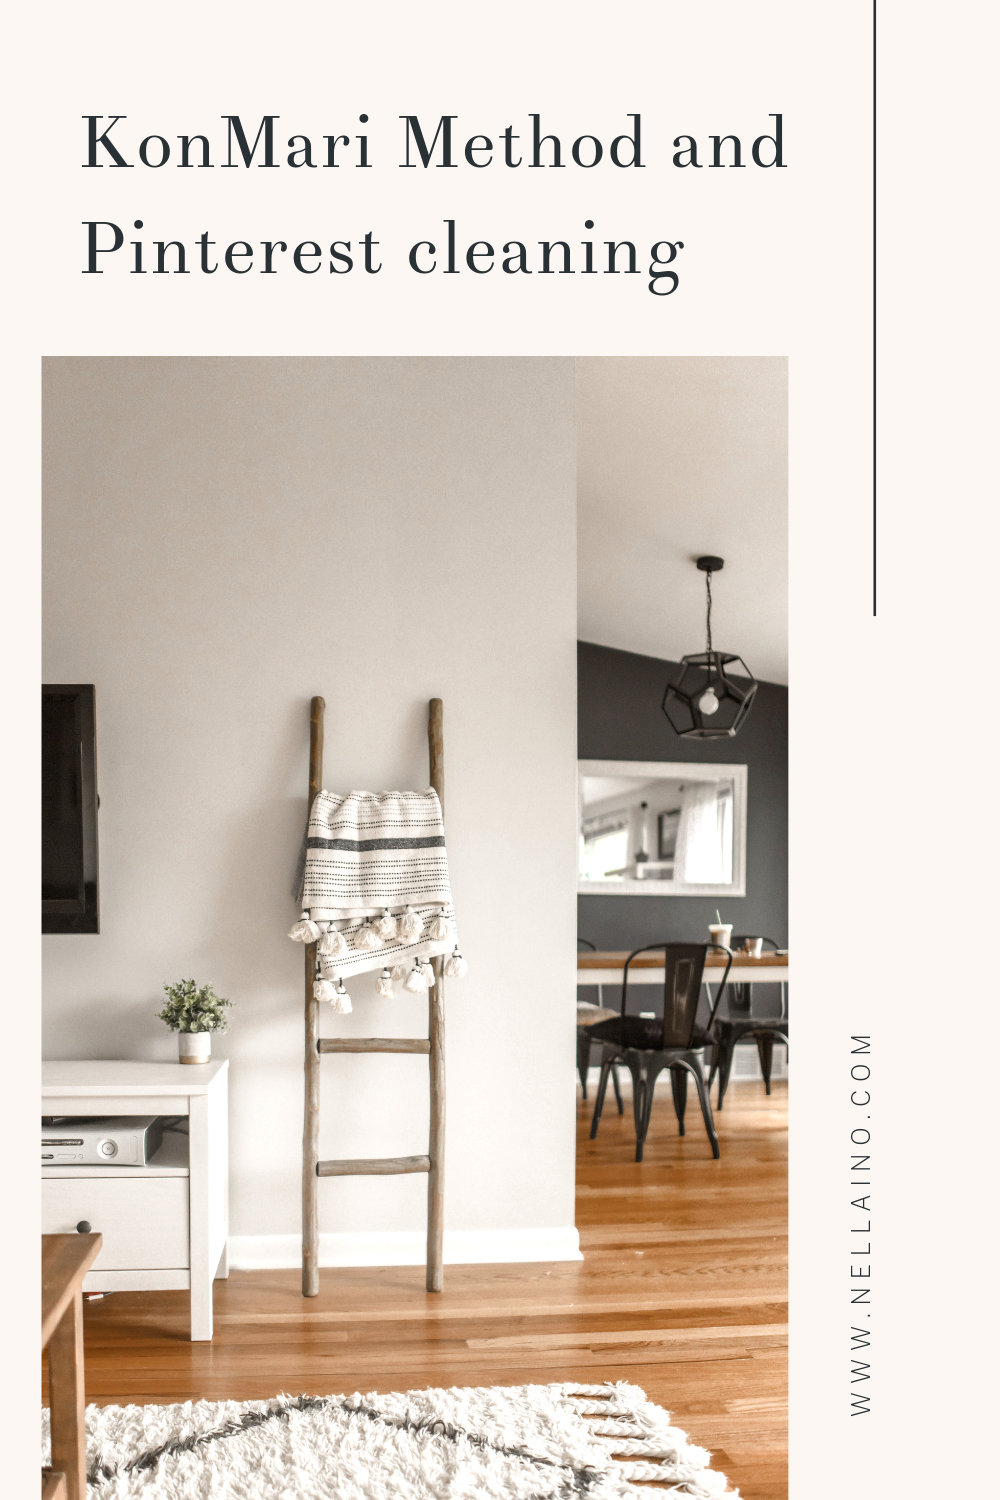 KonMari Method and Pinterest cleaning from Nellaino www.nellaino.com #konmarimethod #pinteresttips